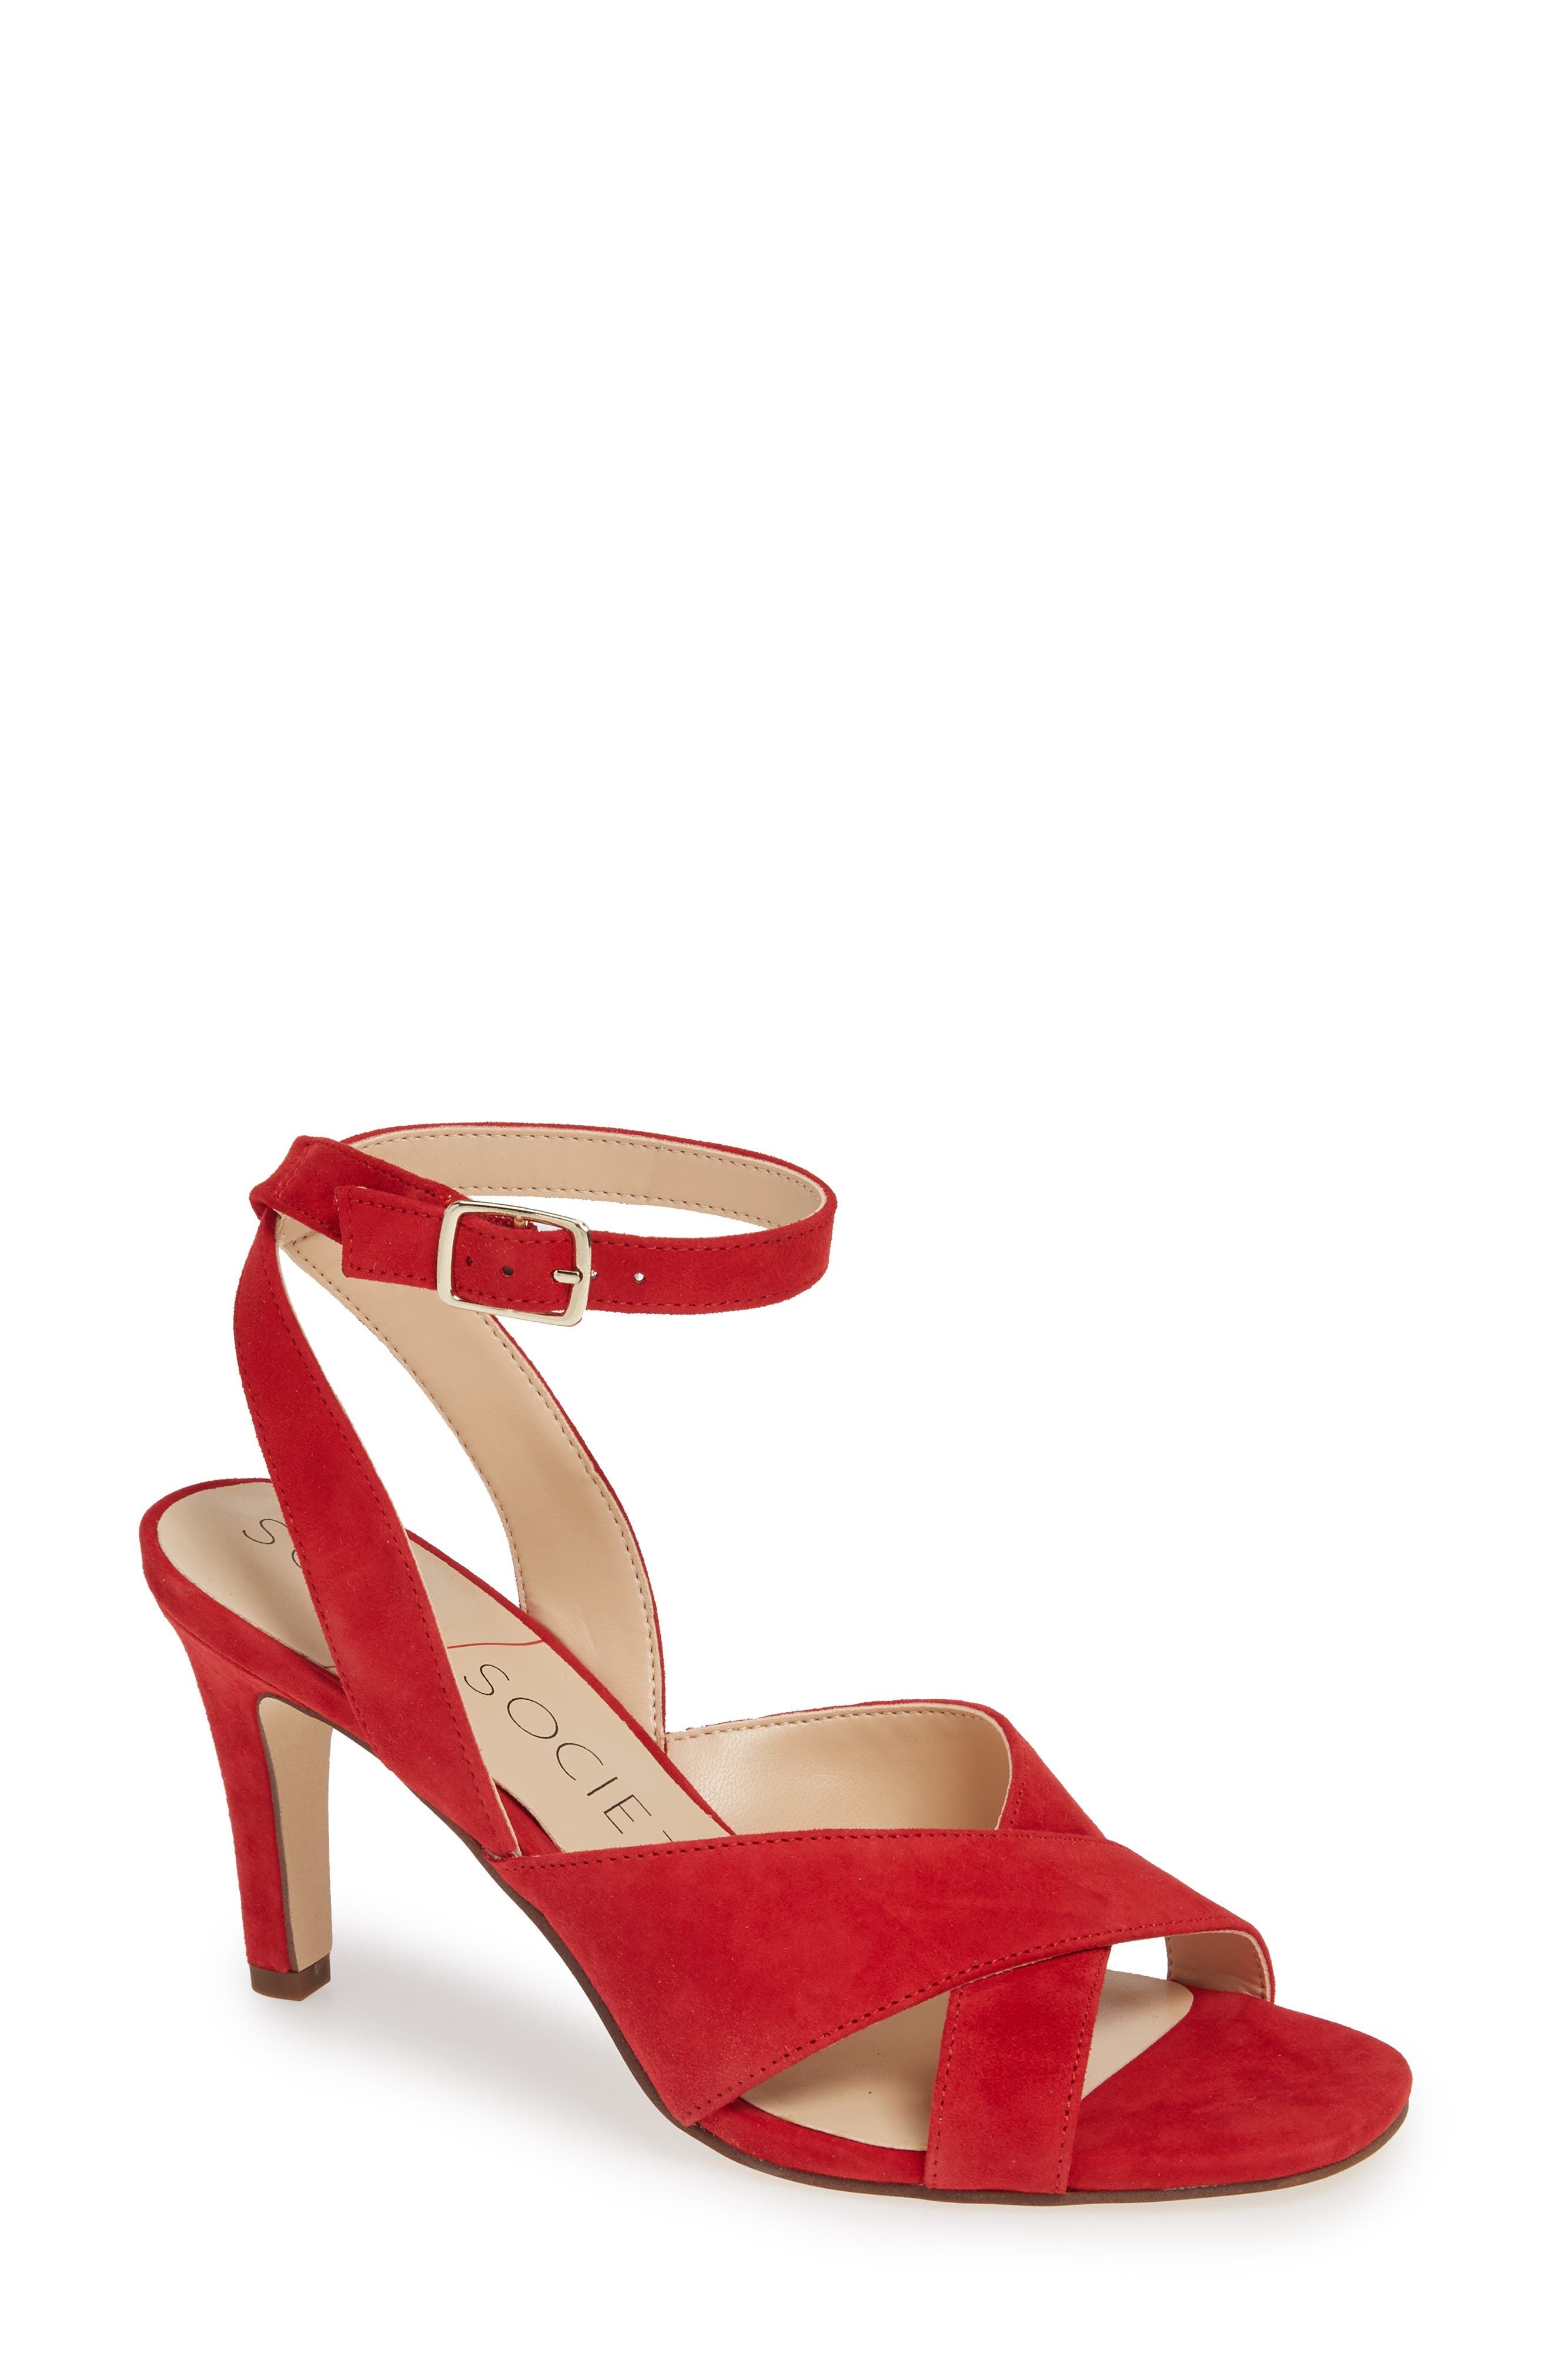 Sole Society Cassidea Ankle Strap Sandal, Red